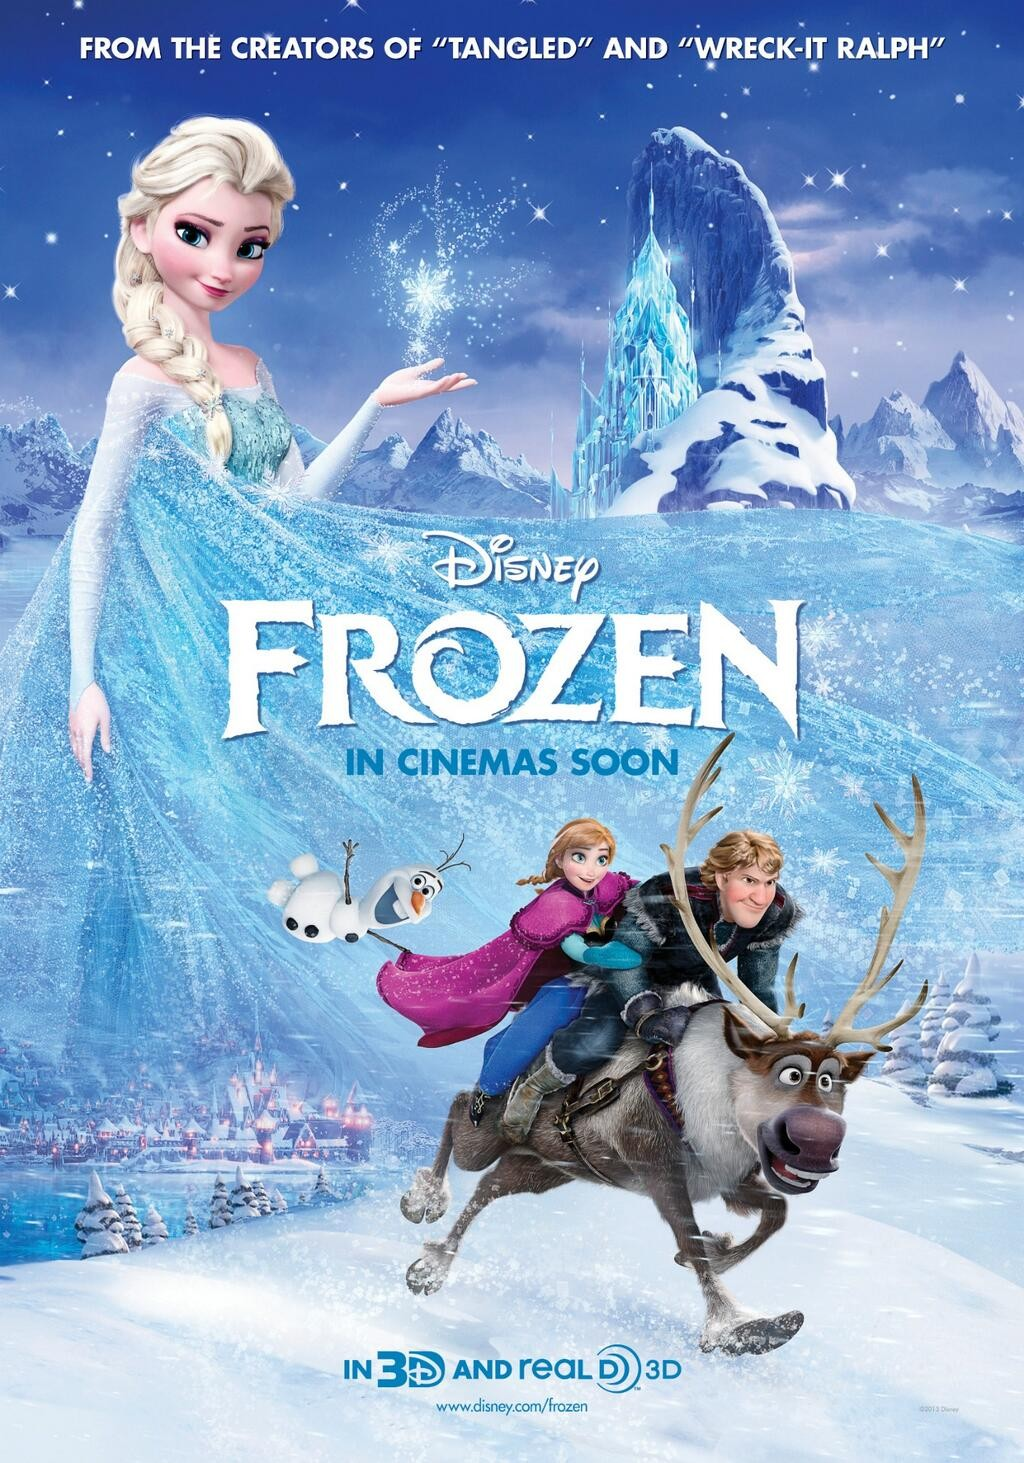 Theatrical poster for Disney's